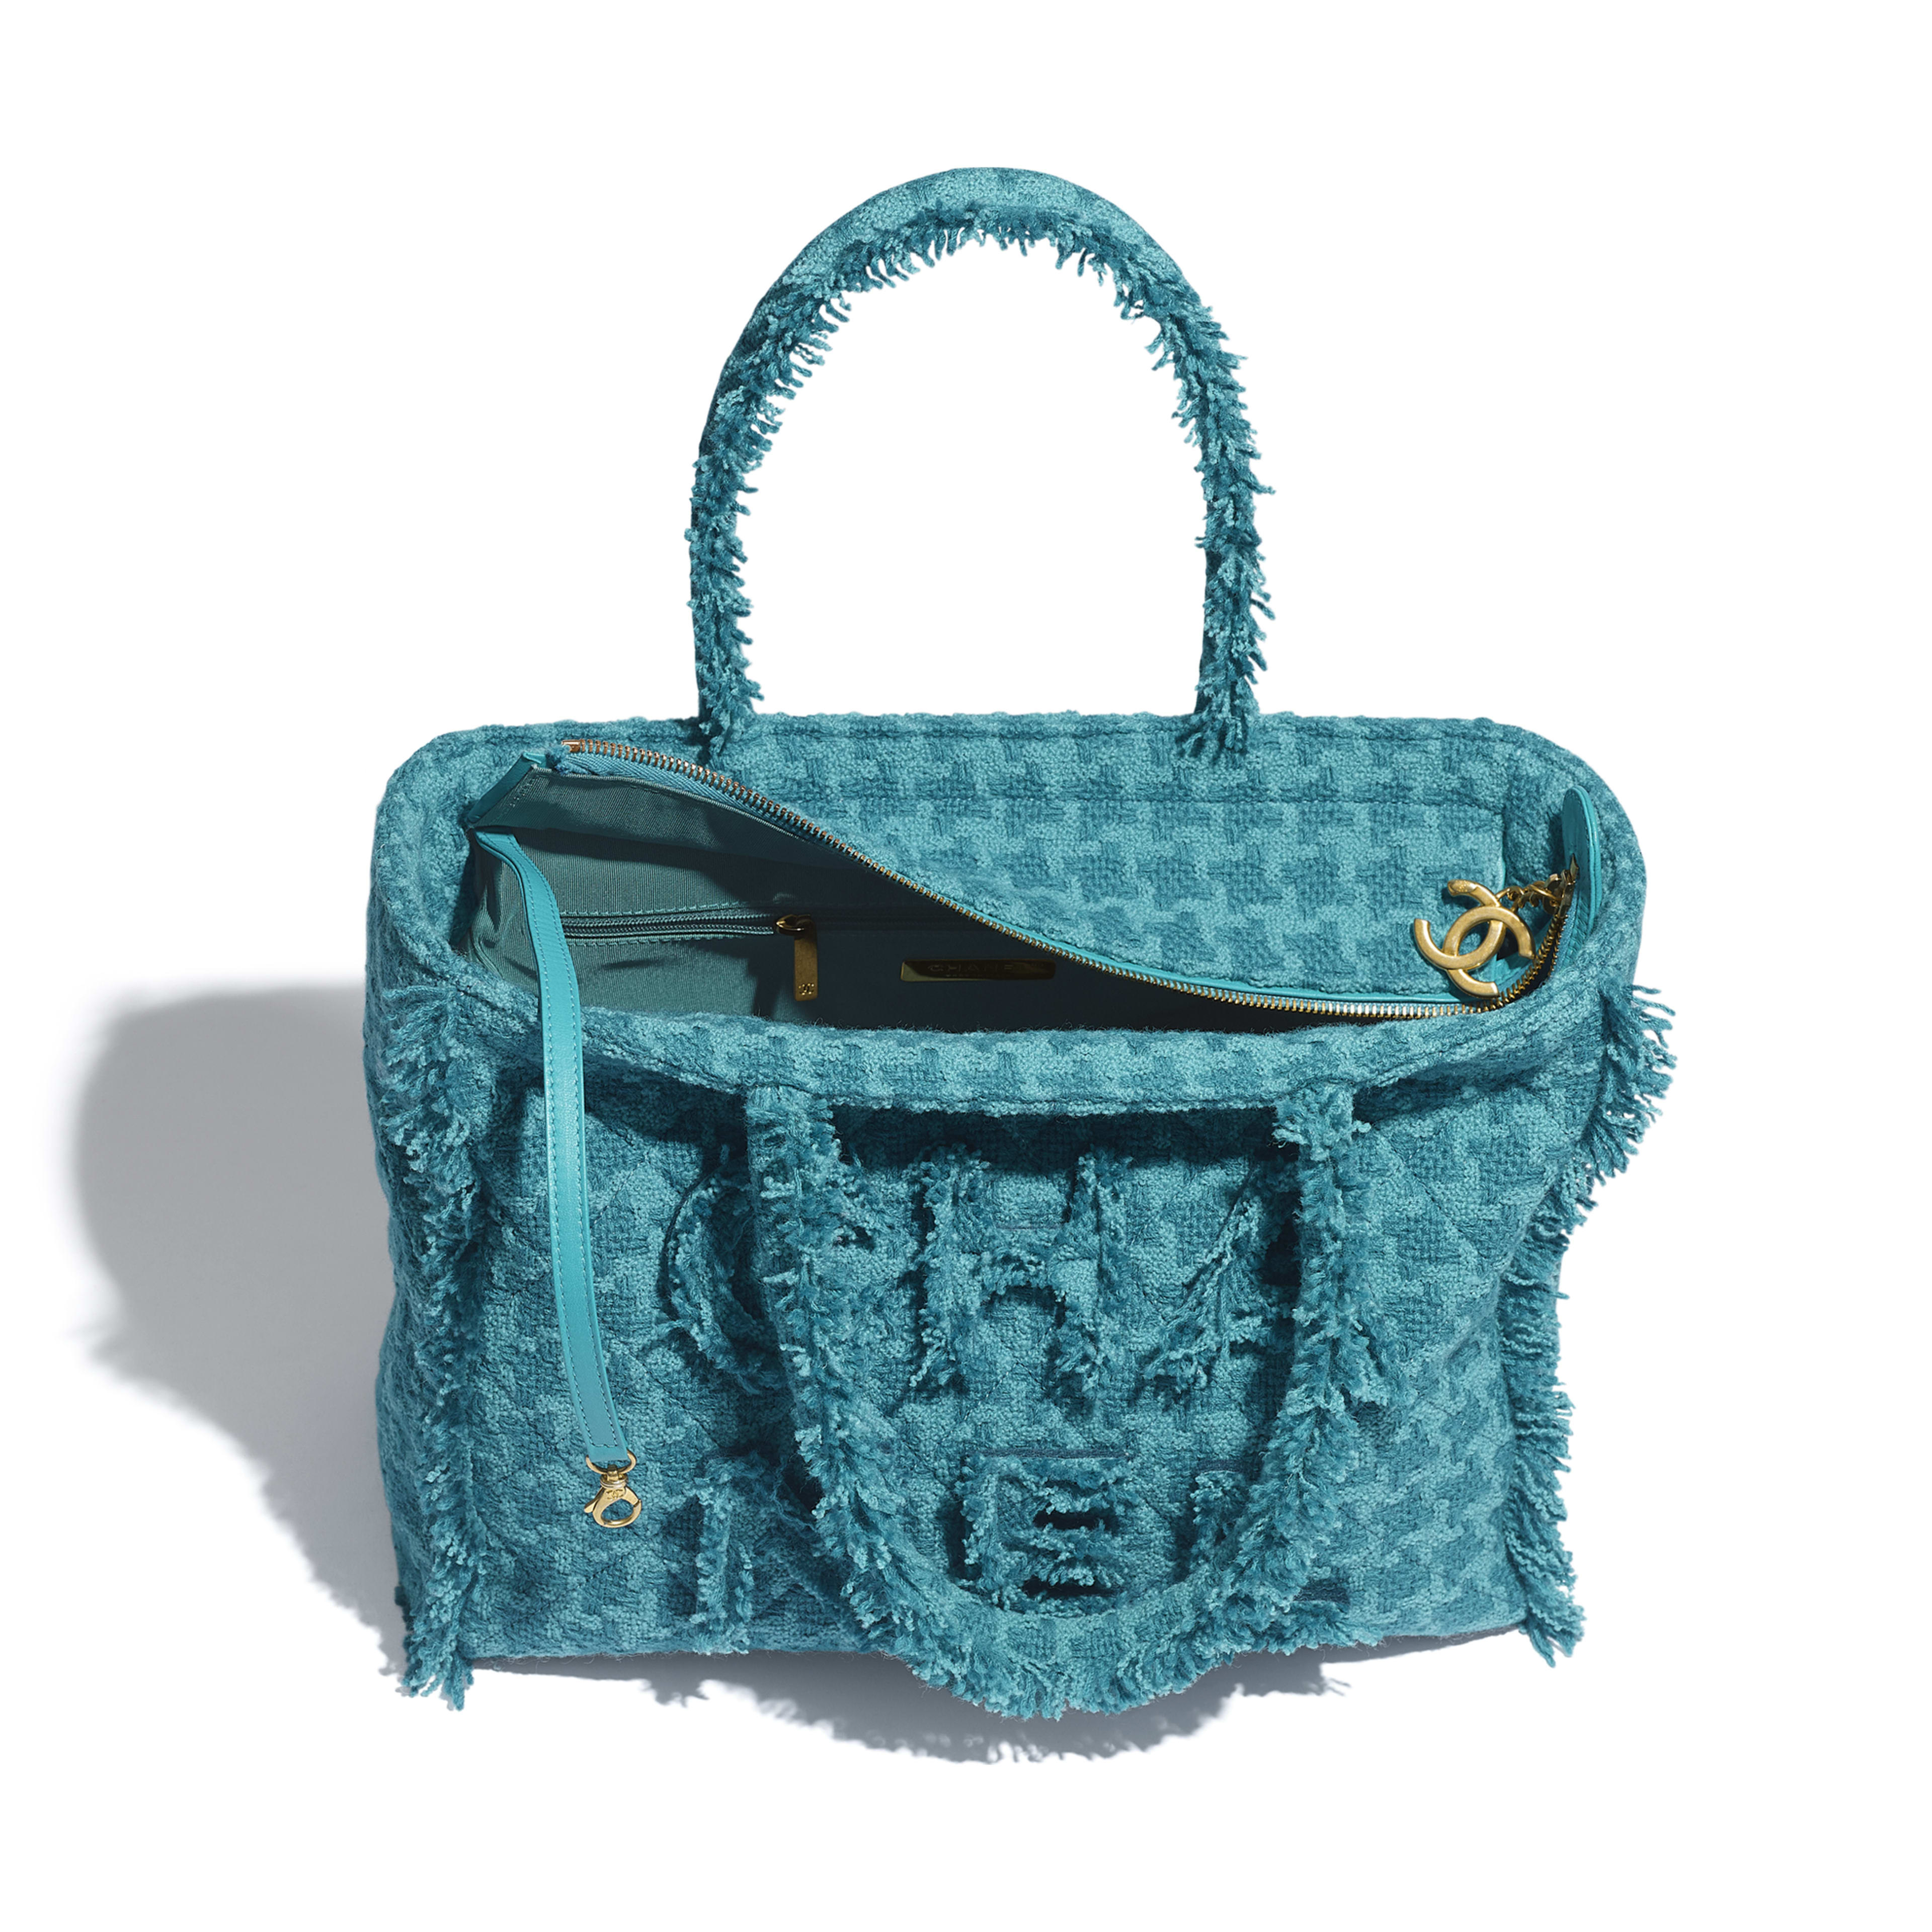 Zipped Shopping Bag - Turquoise - Wool Tweed & Gold-Tone Metal - Other view - see full sized version